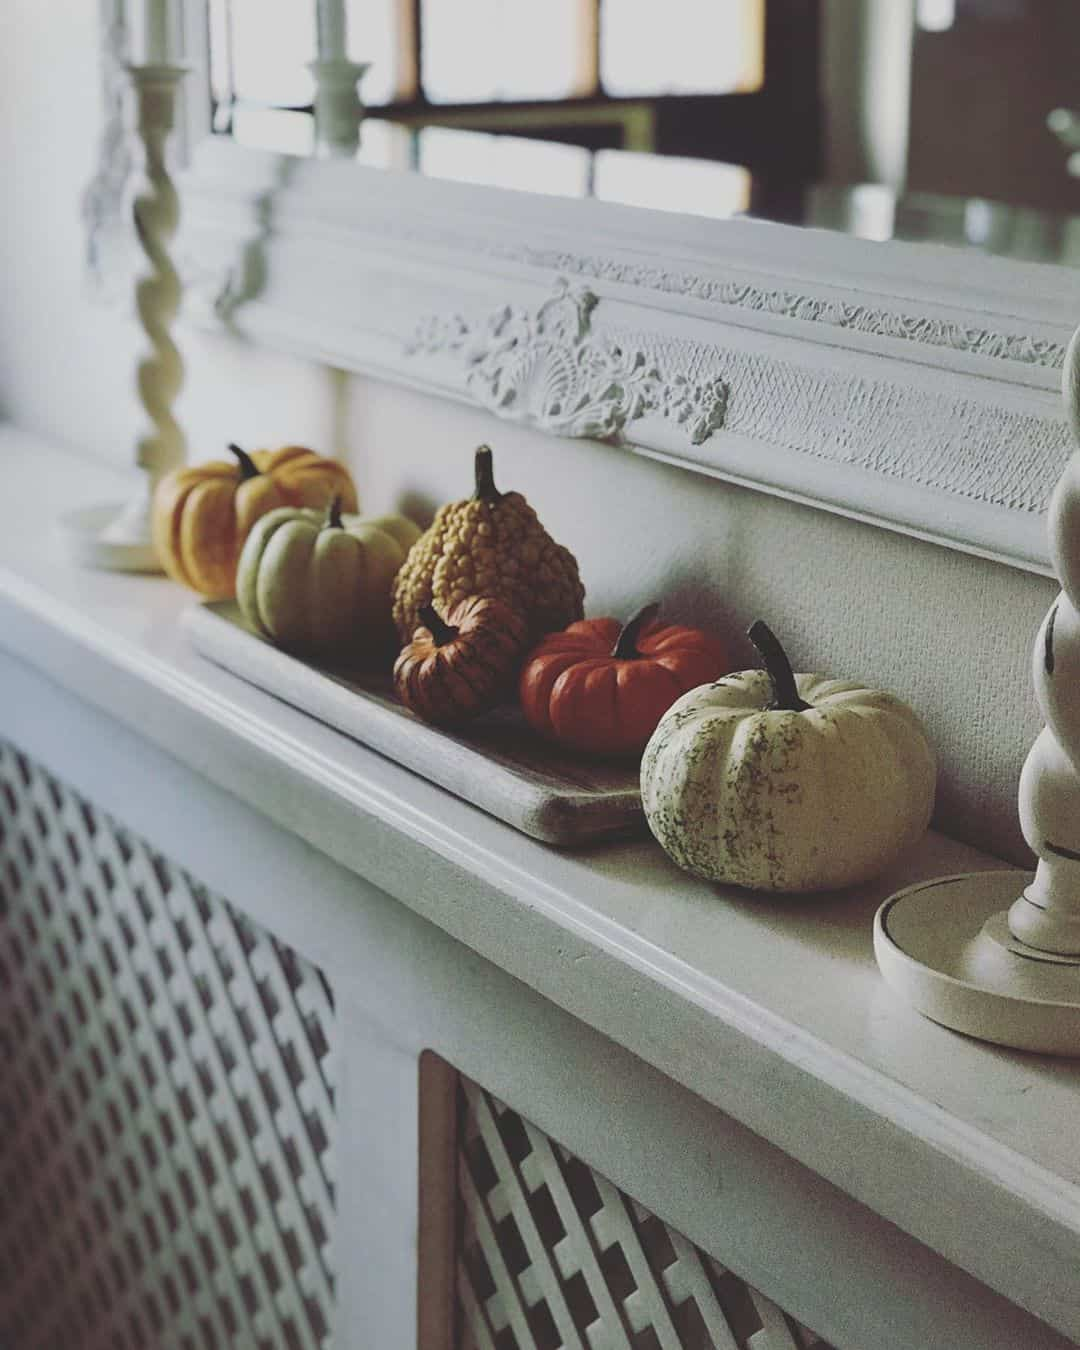 25 Chic and Clever Ways For Decorating Your Home With Pumpkins